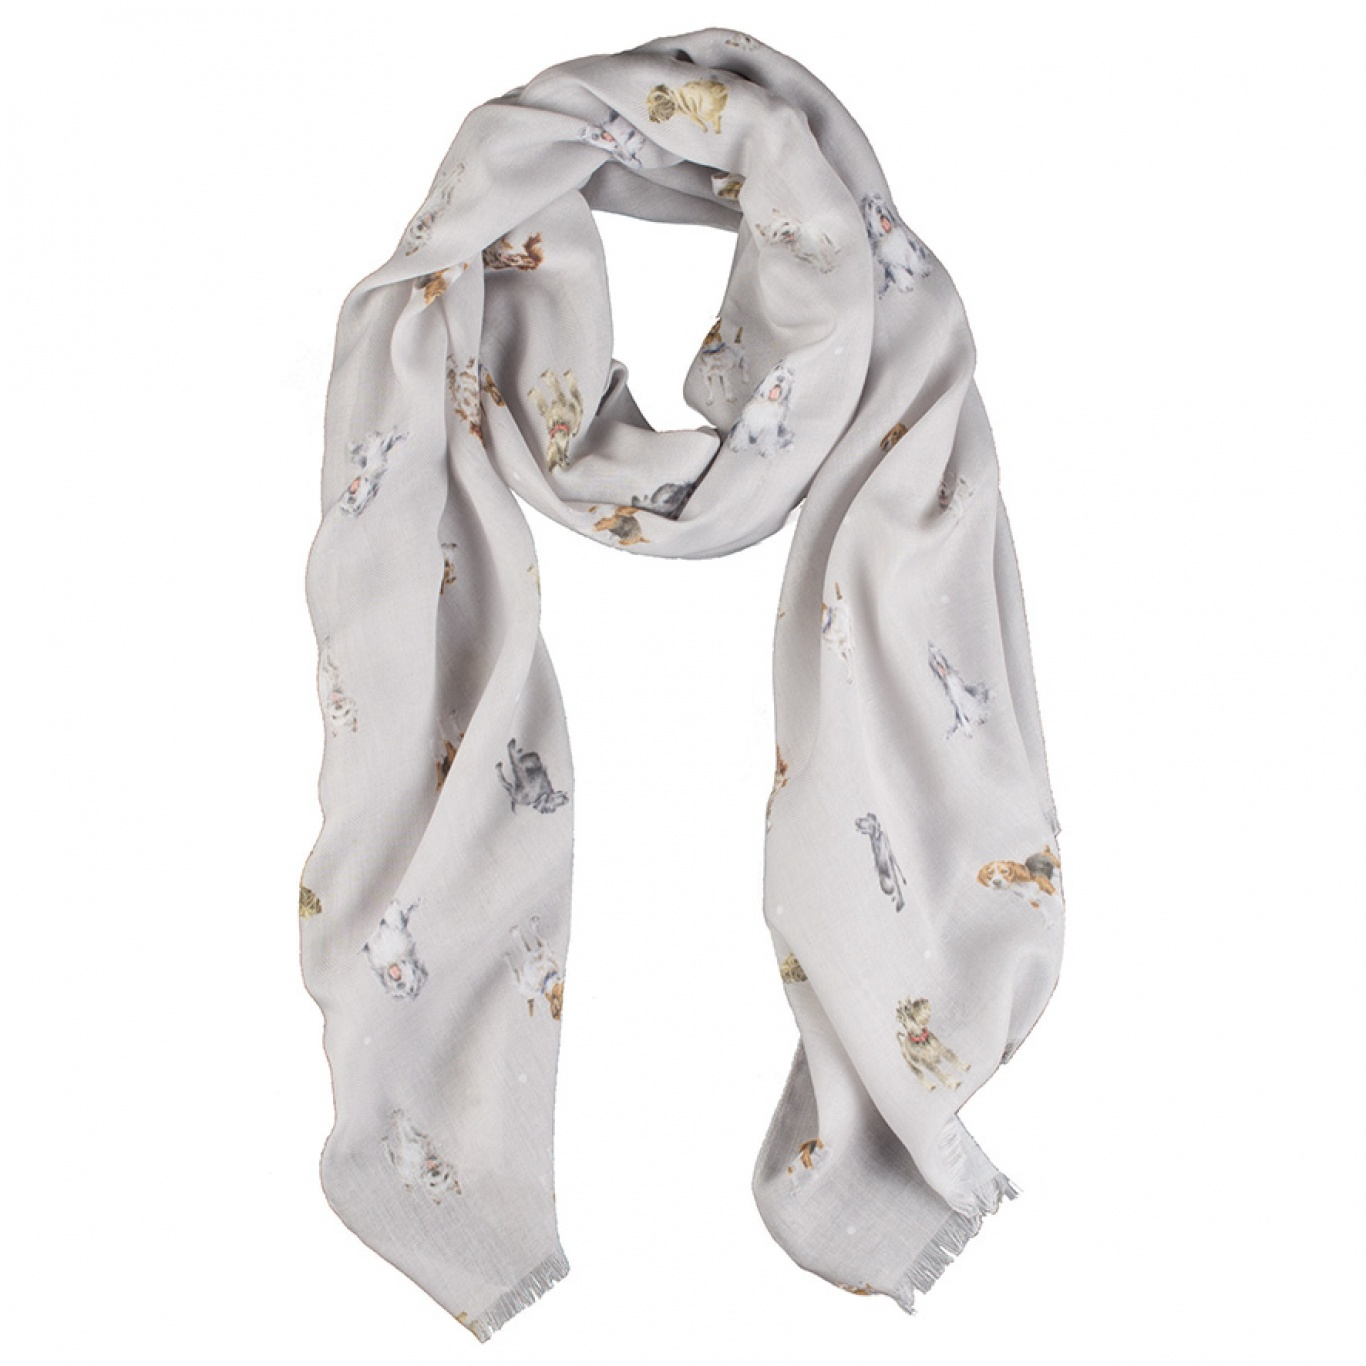 Image of Wrendale Designs A Dog's Life Scarf